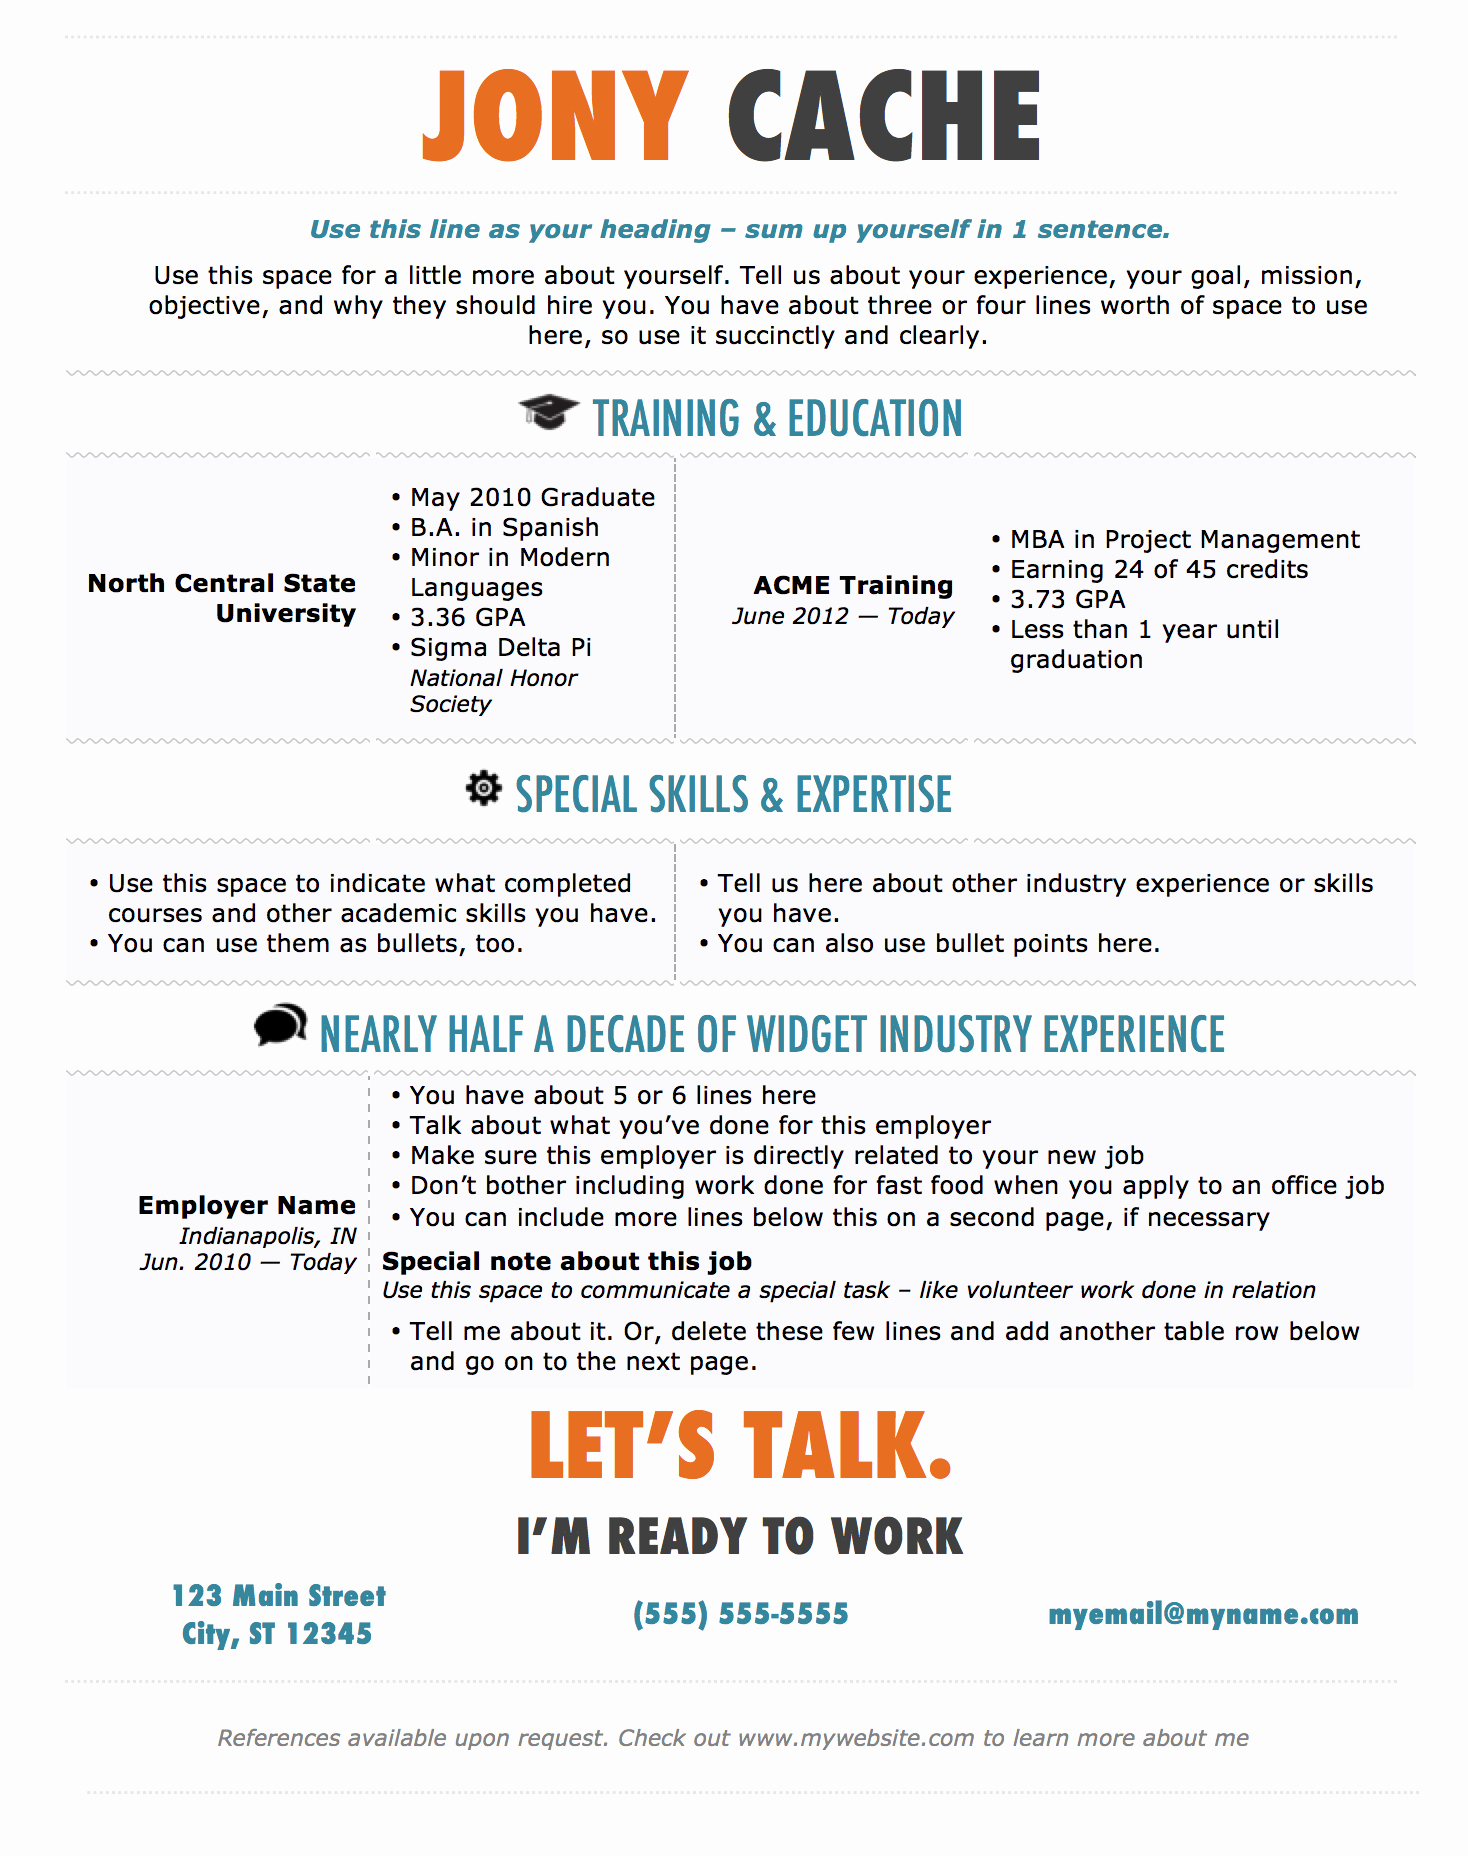 Resume format In Microsoft Word New Modern Resume Template for Microsoft Word — Superpixel